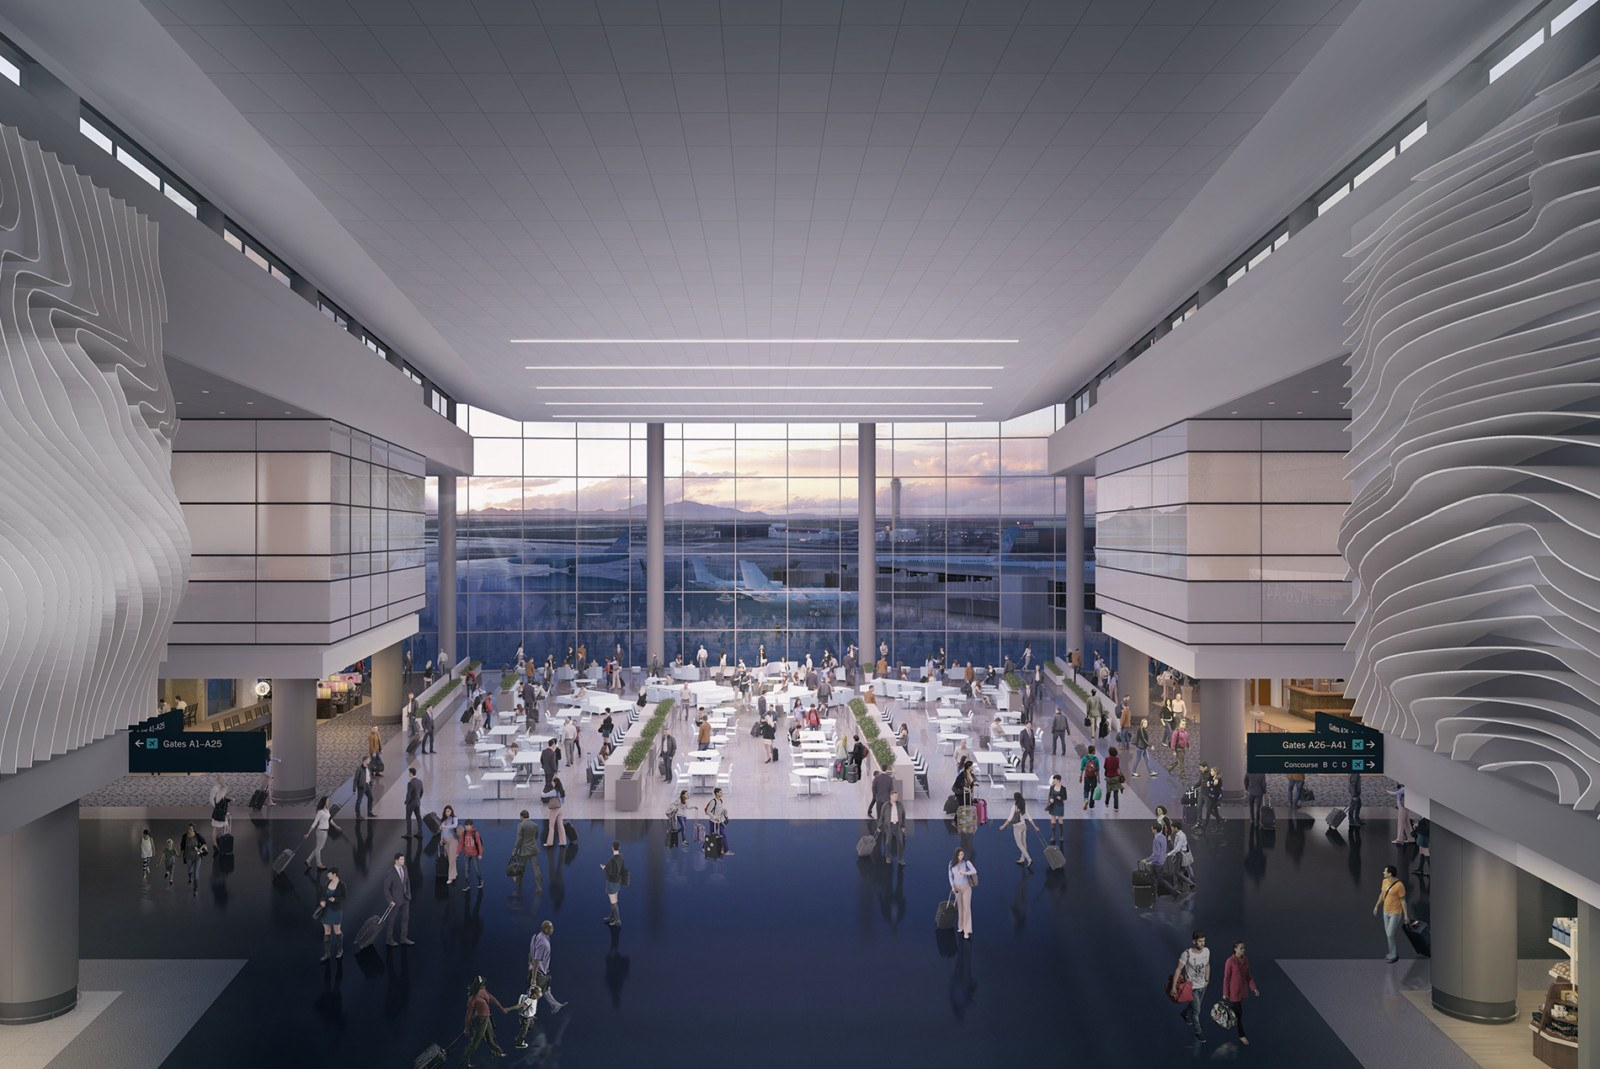 Salt Lake City International Airport Passenger Terminal - HOK